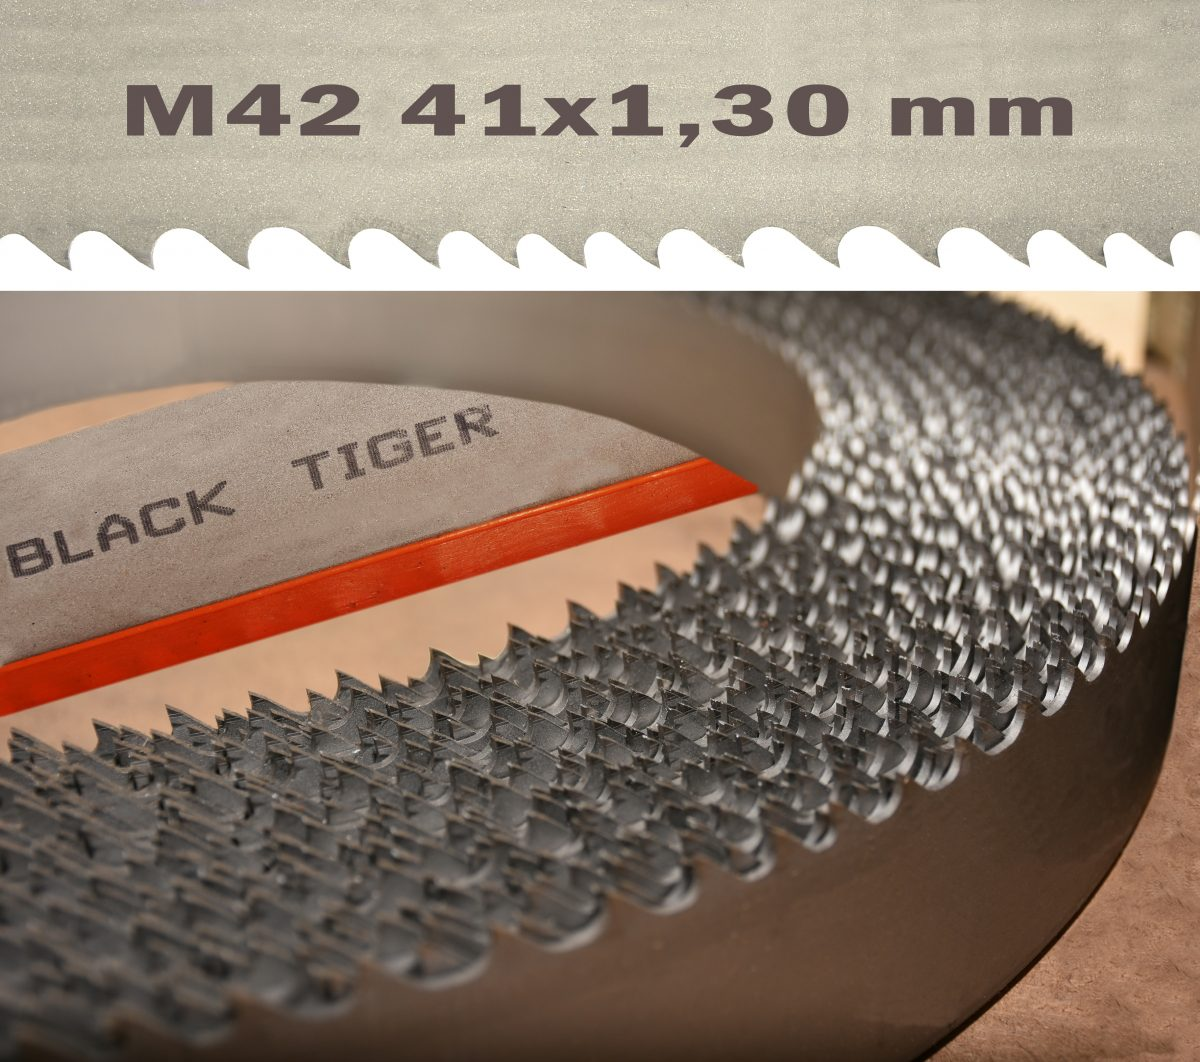 BLACK TIGER Bi Metal Multicut M42 41x1,30